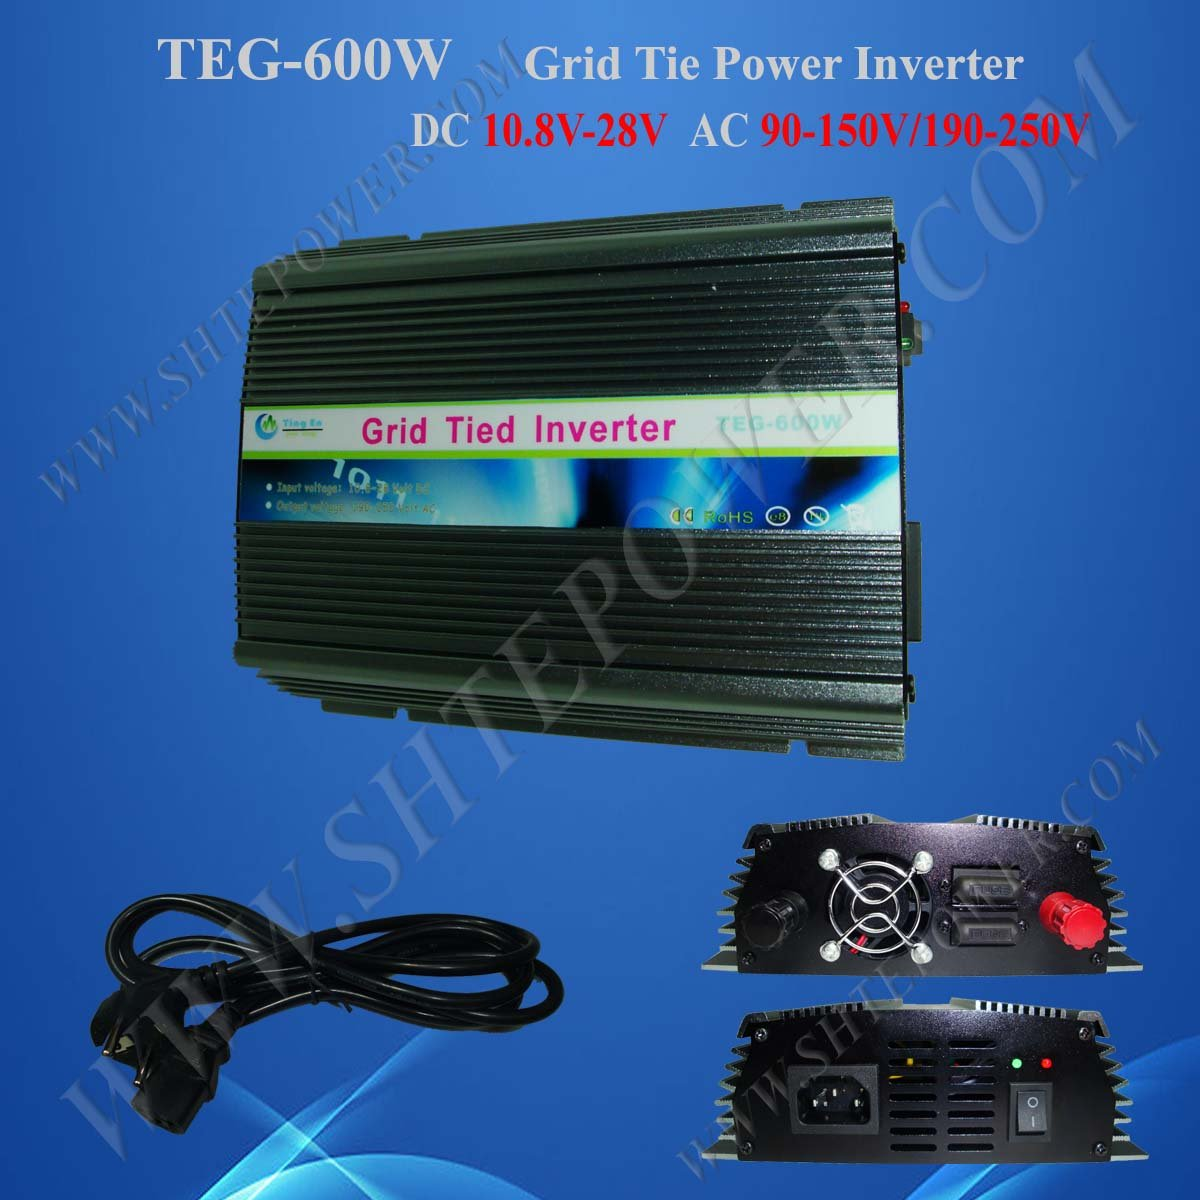 grid tie micro inverter 600w home solar inverter dc 10.8-28v to ac 110v/120v/230v/240v power inverter